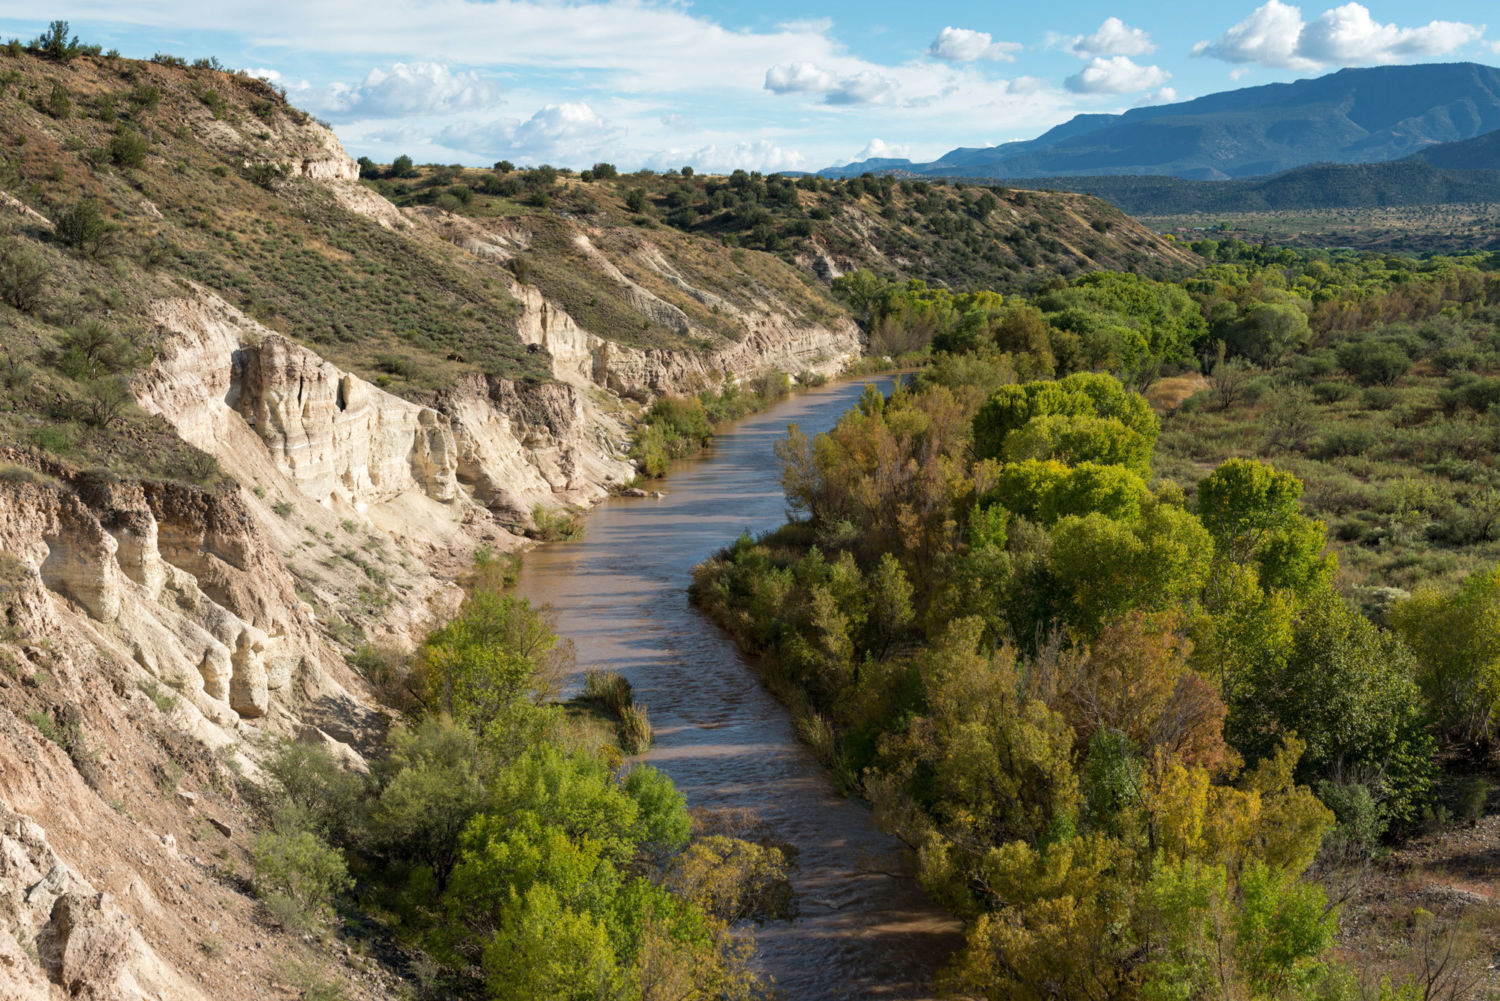 Running Dry: New Strategies for Conserving Water on the